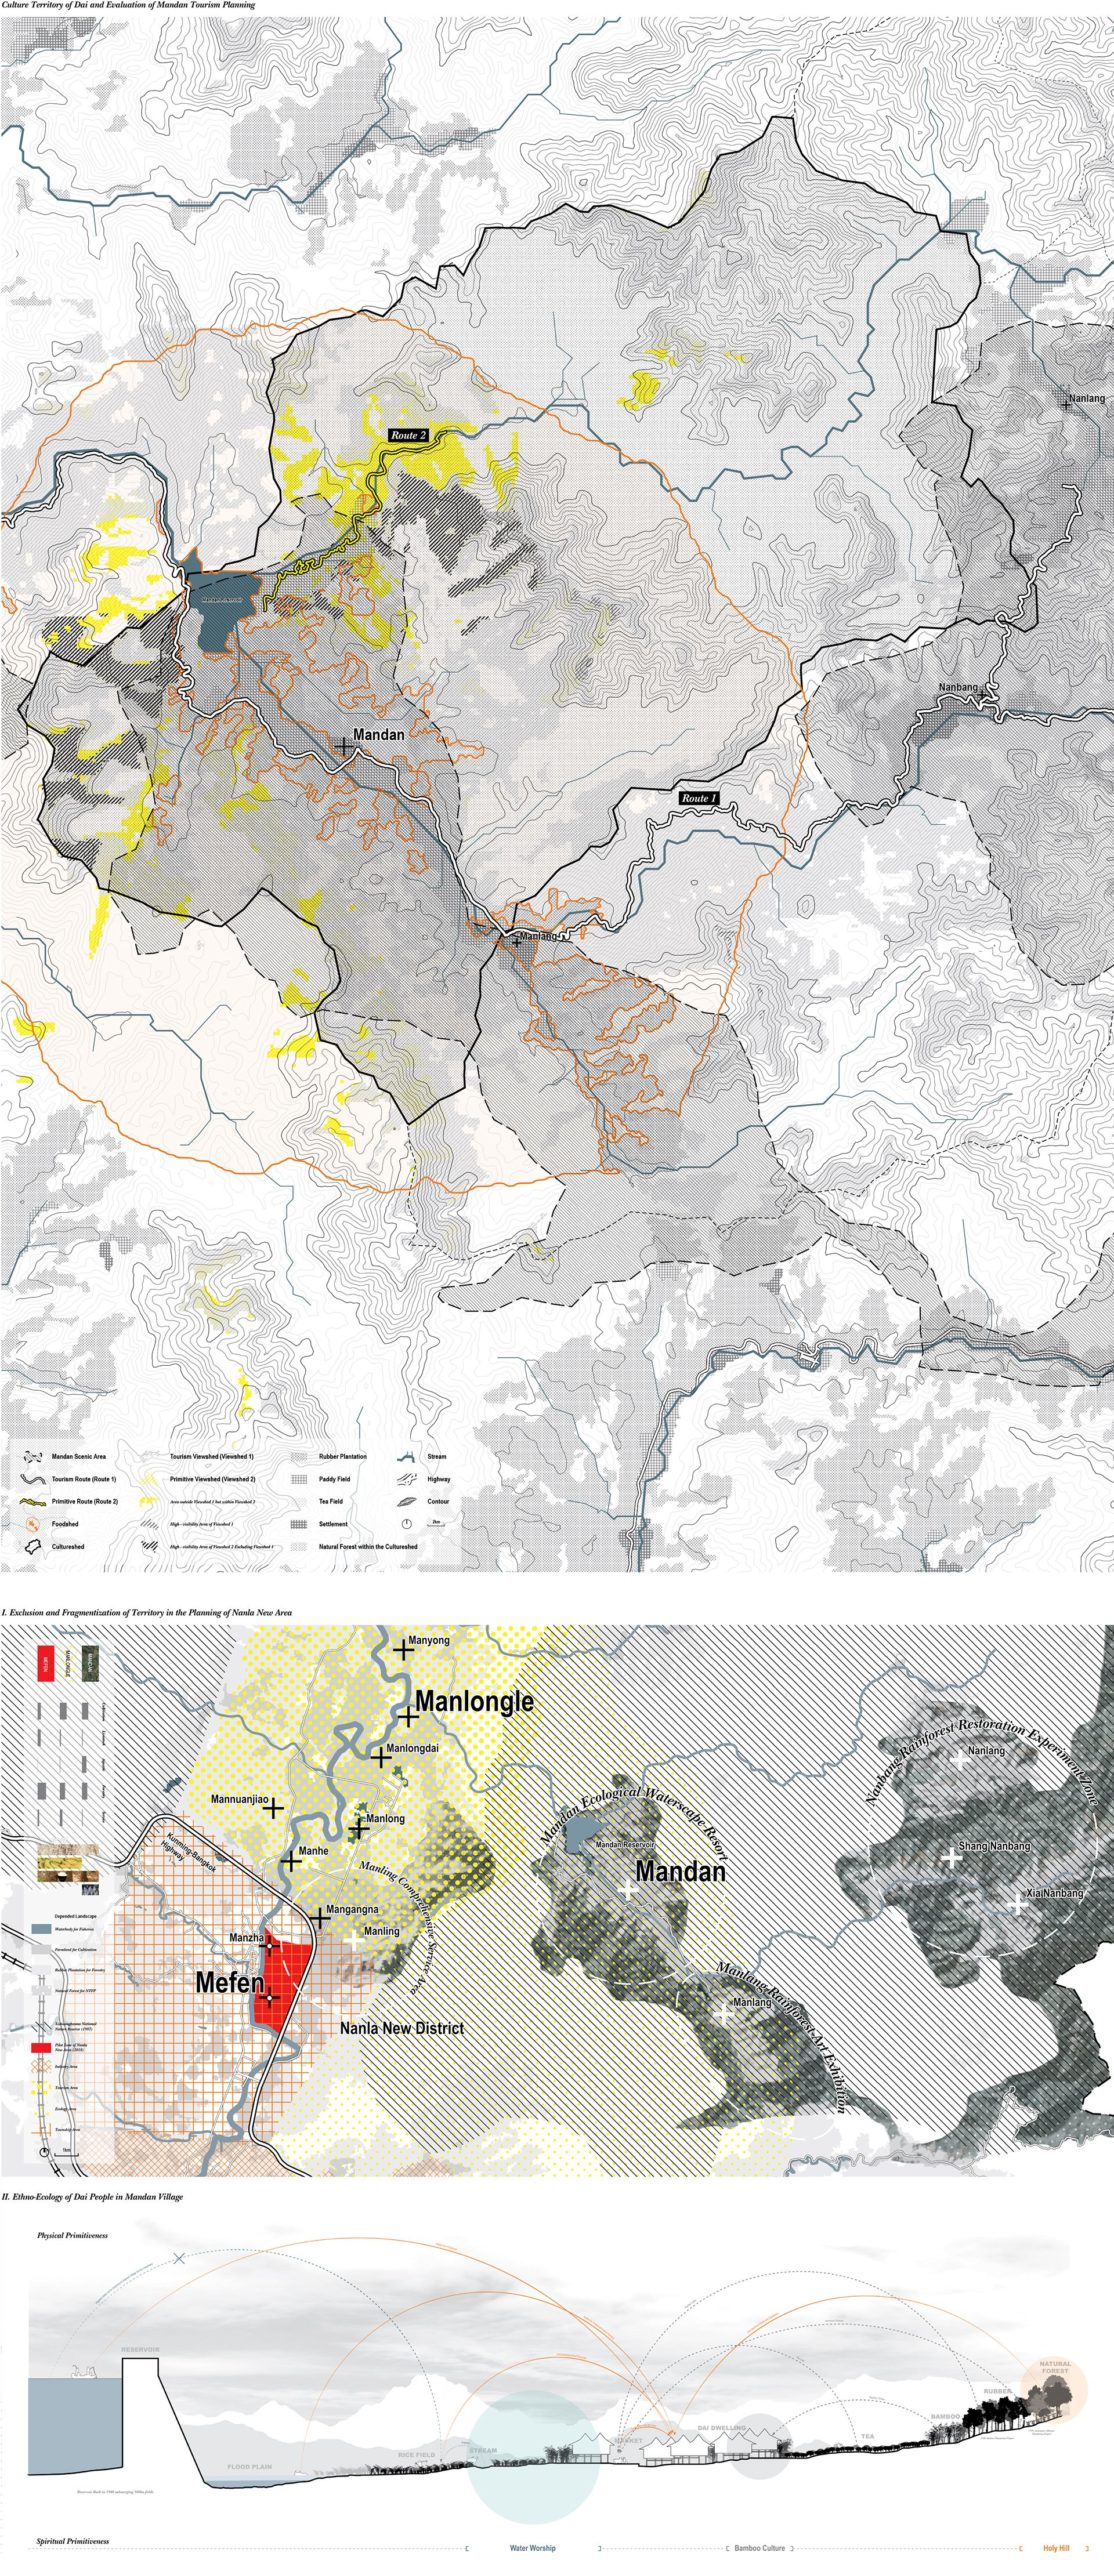 Enlarge Photo: Mandan is to be developed in the mode of National Parks, while the cultural territory of Dai people proved to be much larger than the boundaries of tourism development plans. By ZHANG Mengting Yani, WEI Gongqi William.